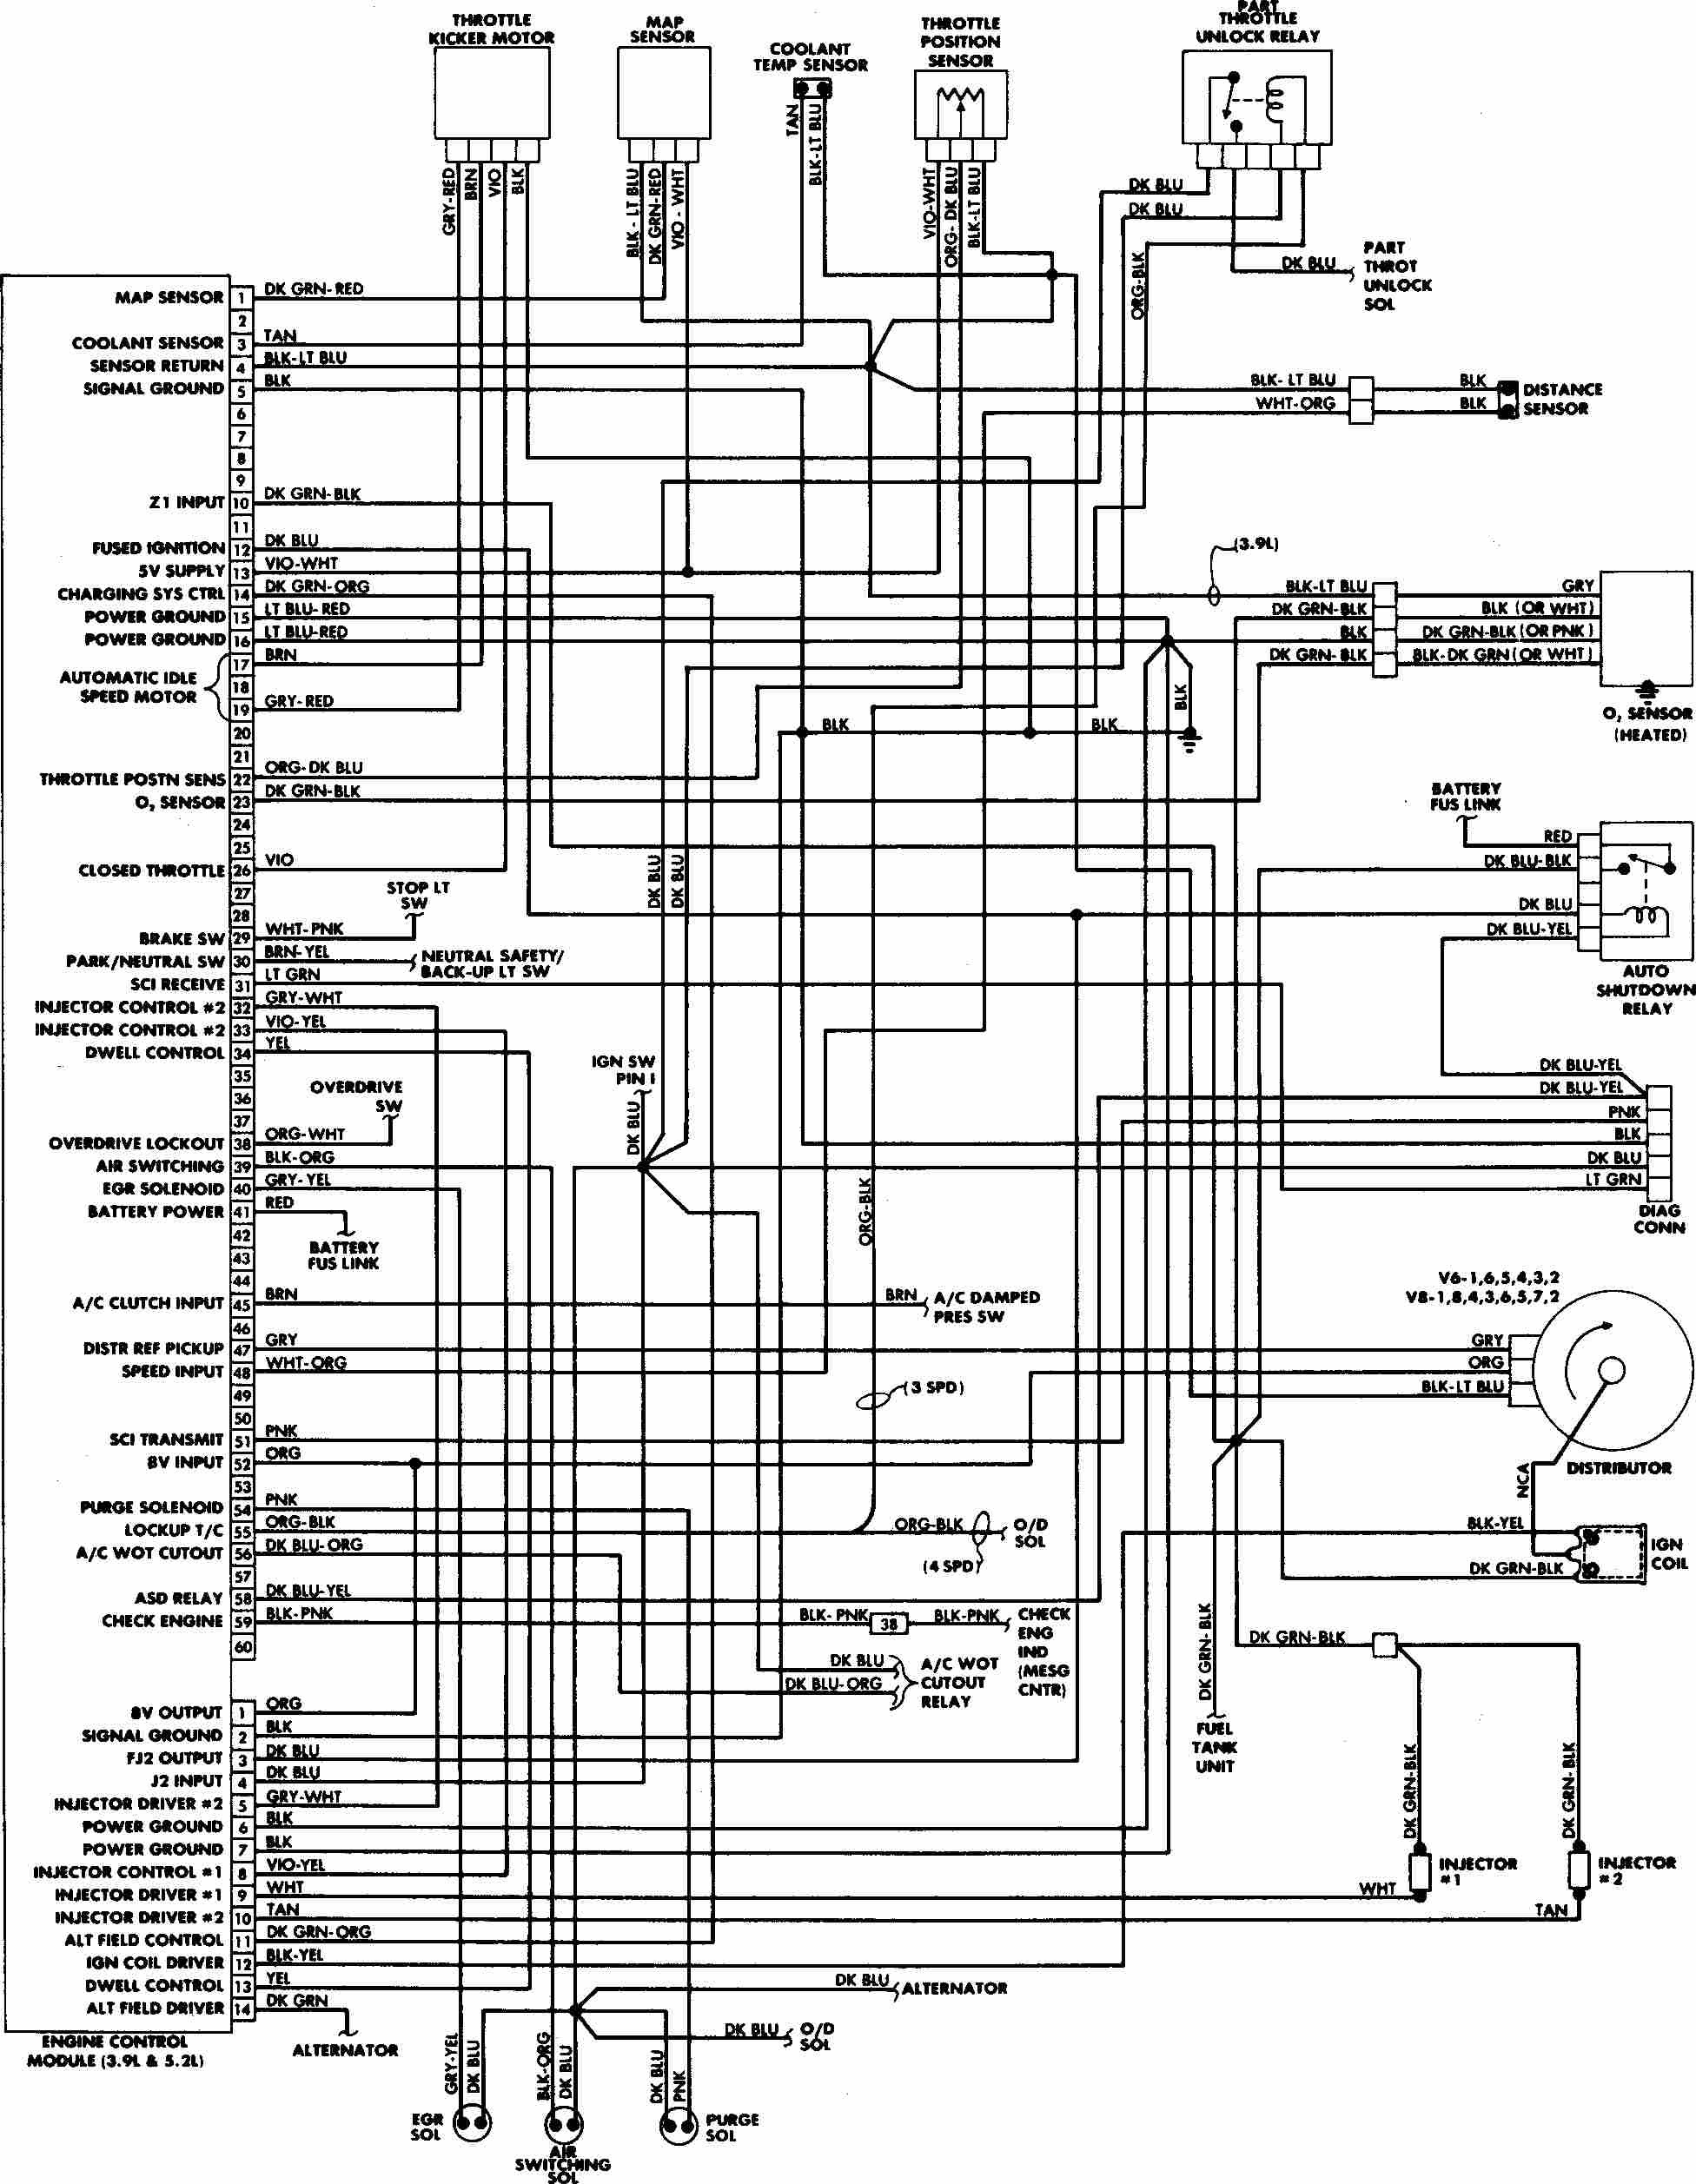 01 Dodge Dakota Tail Light Wiring Diagram | Wiring Liry on 1998 dodge truck wiring diagram, dodge dakota blower motor wiring diagram, dodge ignition wiring diagram, dodge dakota parts diagram, dodge dakota radio wiring diagram, 2001 dodge durango trailer wiring diagram, dodge ram light wiring diagram, 1969 dodge charger wiring diagram, harley davidson sportster brake light wiring diagram, dodge truck trailer wiring diagram, dodge dakota transmission wiring diagram, dodge grand caravan wiring diagram, dodge wiper motor wiring diagram, wire motion sensor light wiring diagram, 1990 dodge tail light wiring diagram, dodge dakota voltage regulator wiring diagram, dodge dakota fuel gauge wiring diagram, dodge dakota fuse diagram, dodge ram 7 pin trailer wiring diagram, 2002 toyota camry wiring diagram,